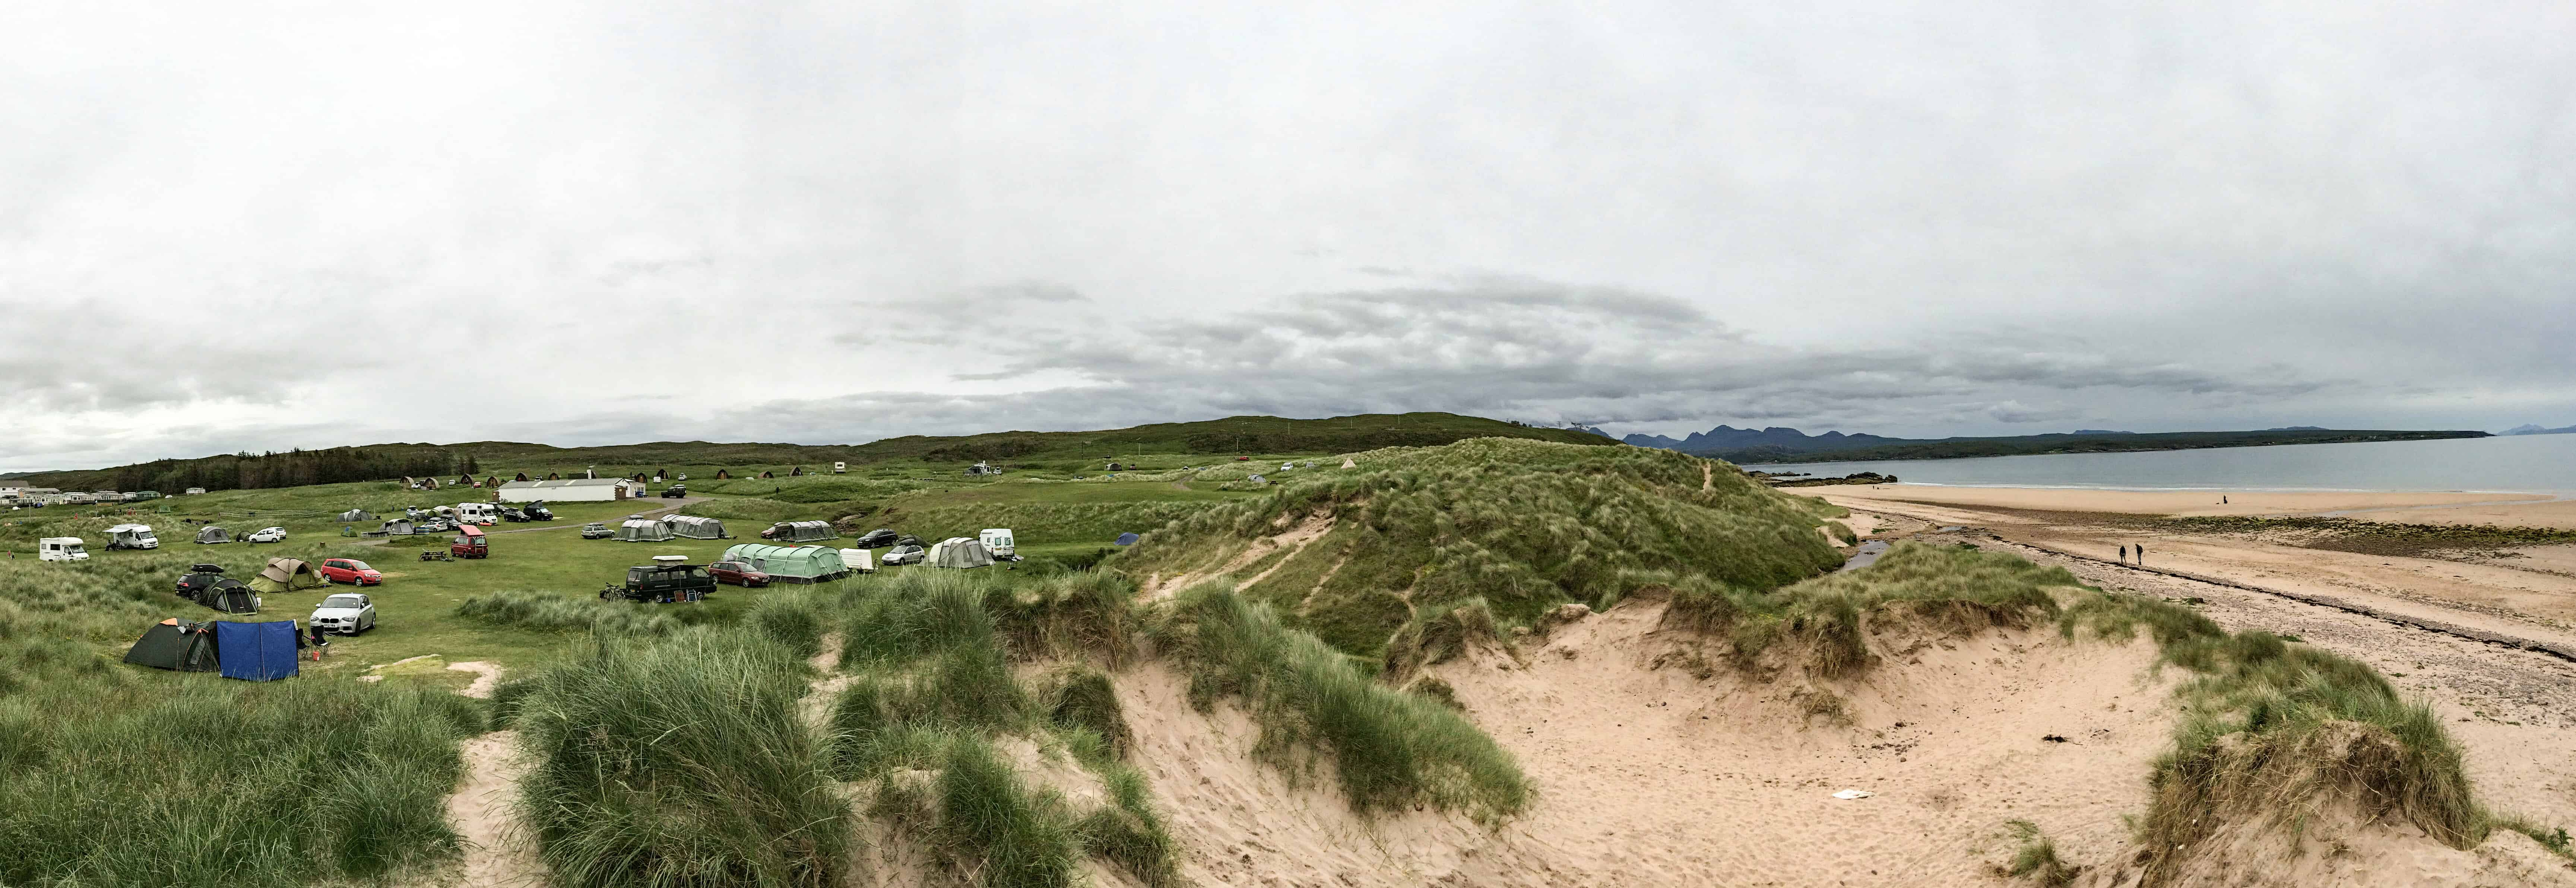 Camping in Scotland 6